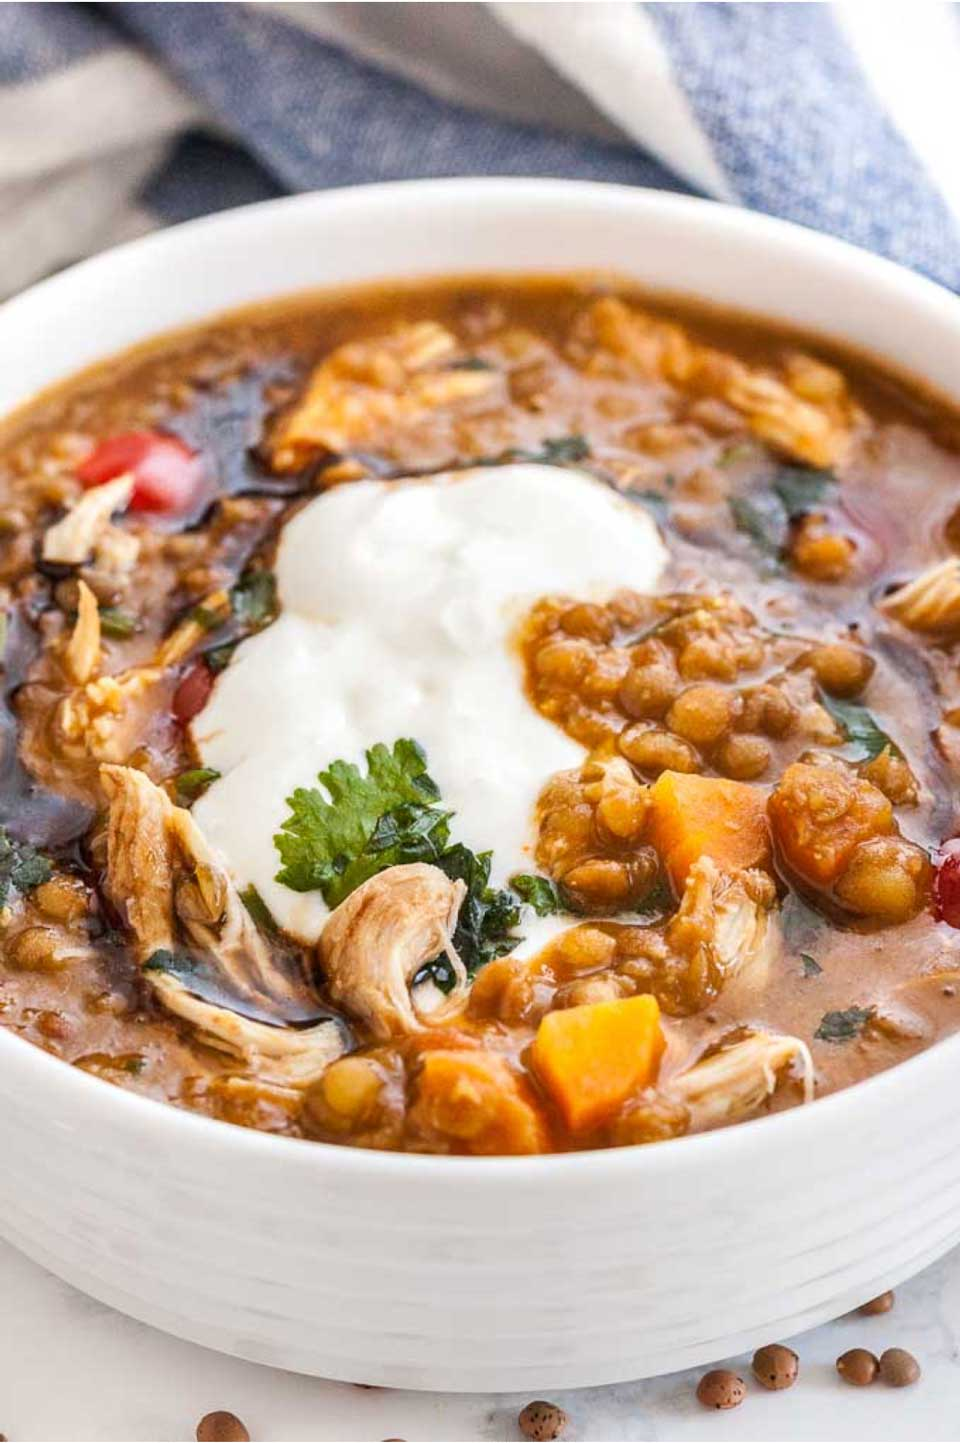 Full of whole grains and veggies, this Instant Pot Lentil Soup with Vegetables from Julia at Plated Cravings takes chicken soup to a whole new level of flavor and nutrition! And don't miss all our other terrific pressure cooker chicken soup recipes, too!